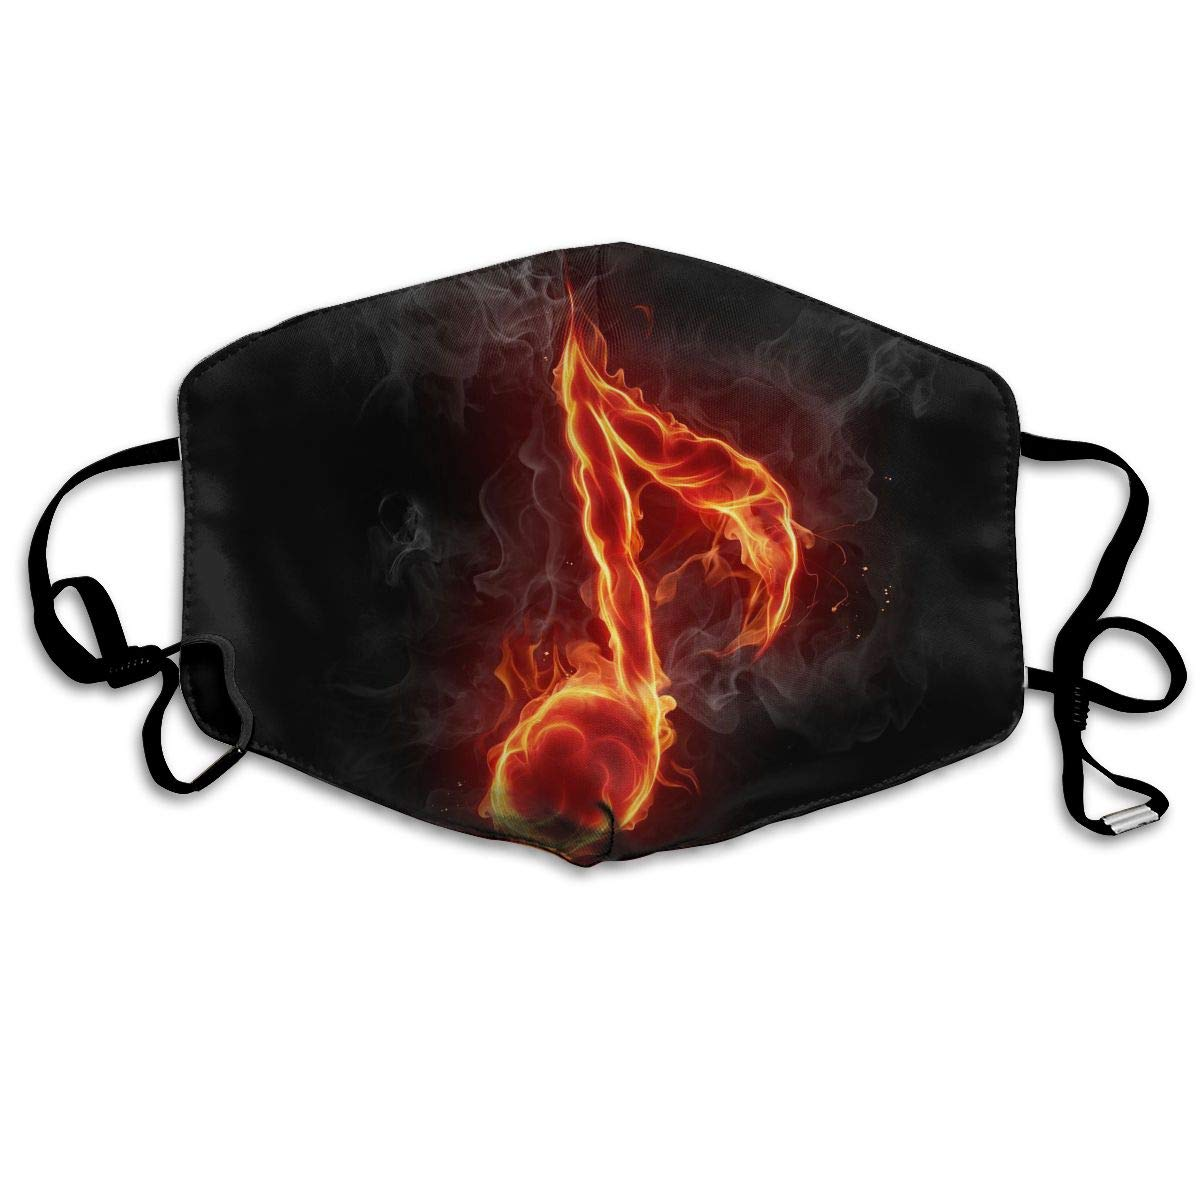 Sam-Uncle Anti Dust Face Mouth Cover Mask Music Notation Image Anti Pollution Breath Healthy Mask